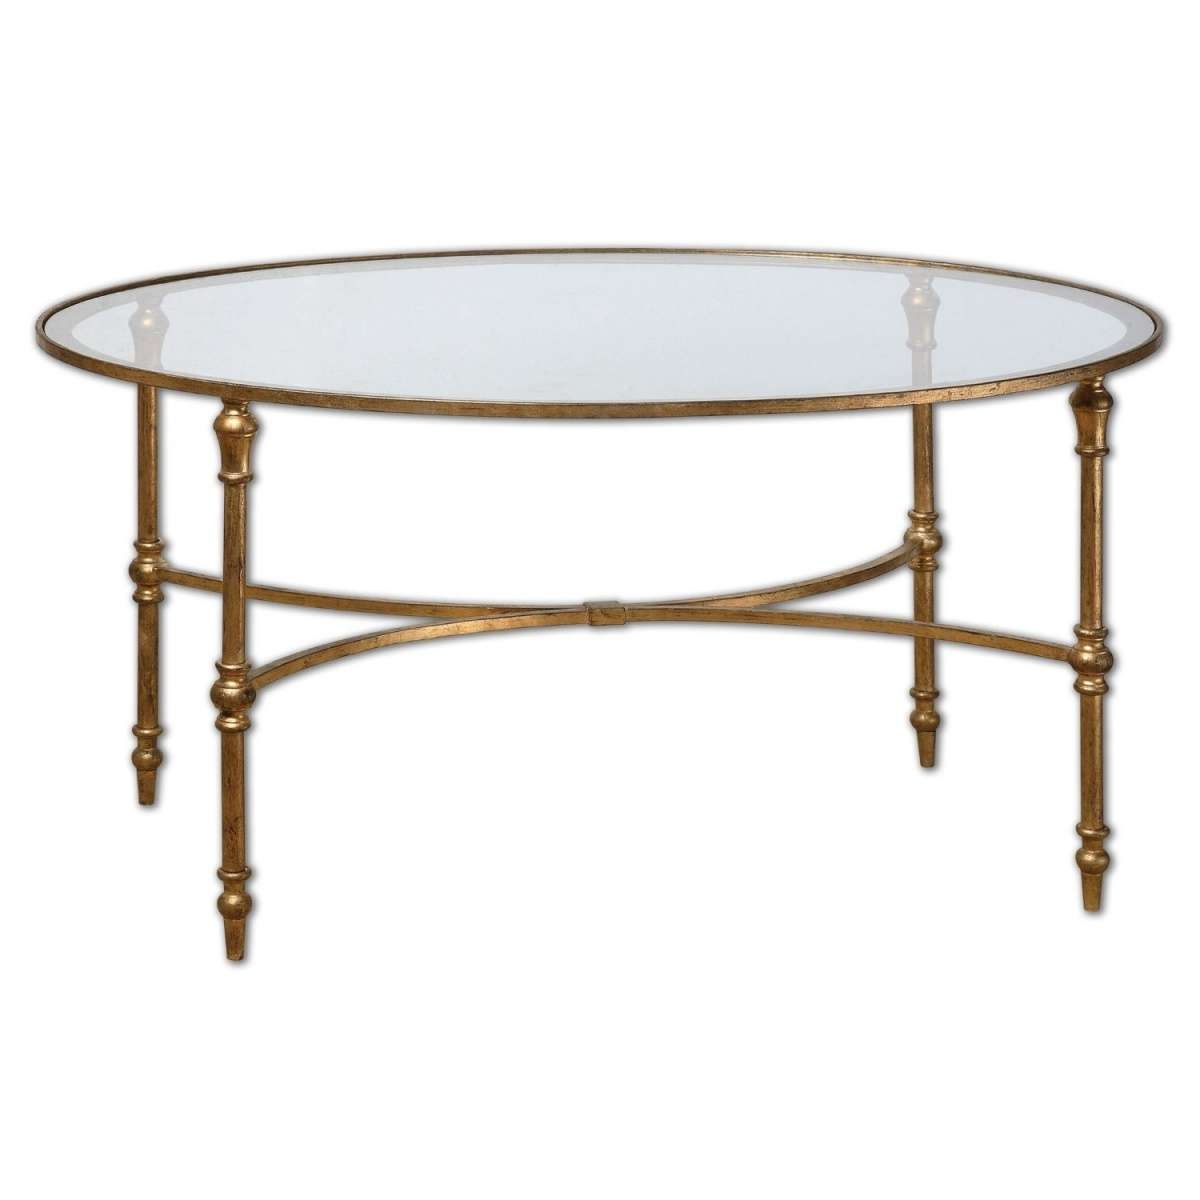 Trendy Metal And Glass Coffee Tables Throughout Coffee Tables : Fashionable Inspiration All Glass Coffee Table (View 9 of 20)